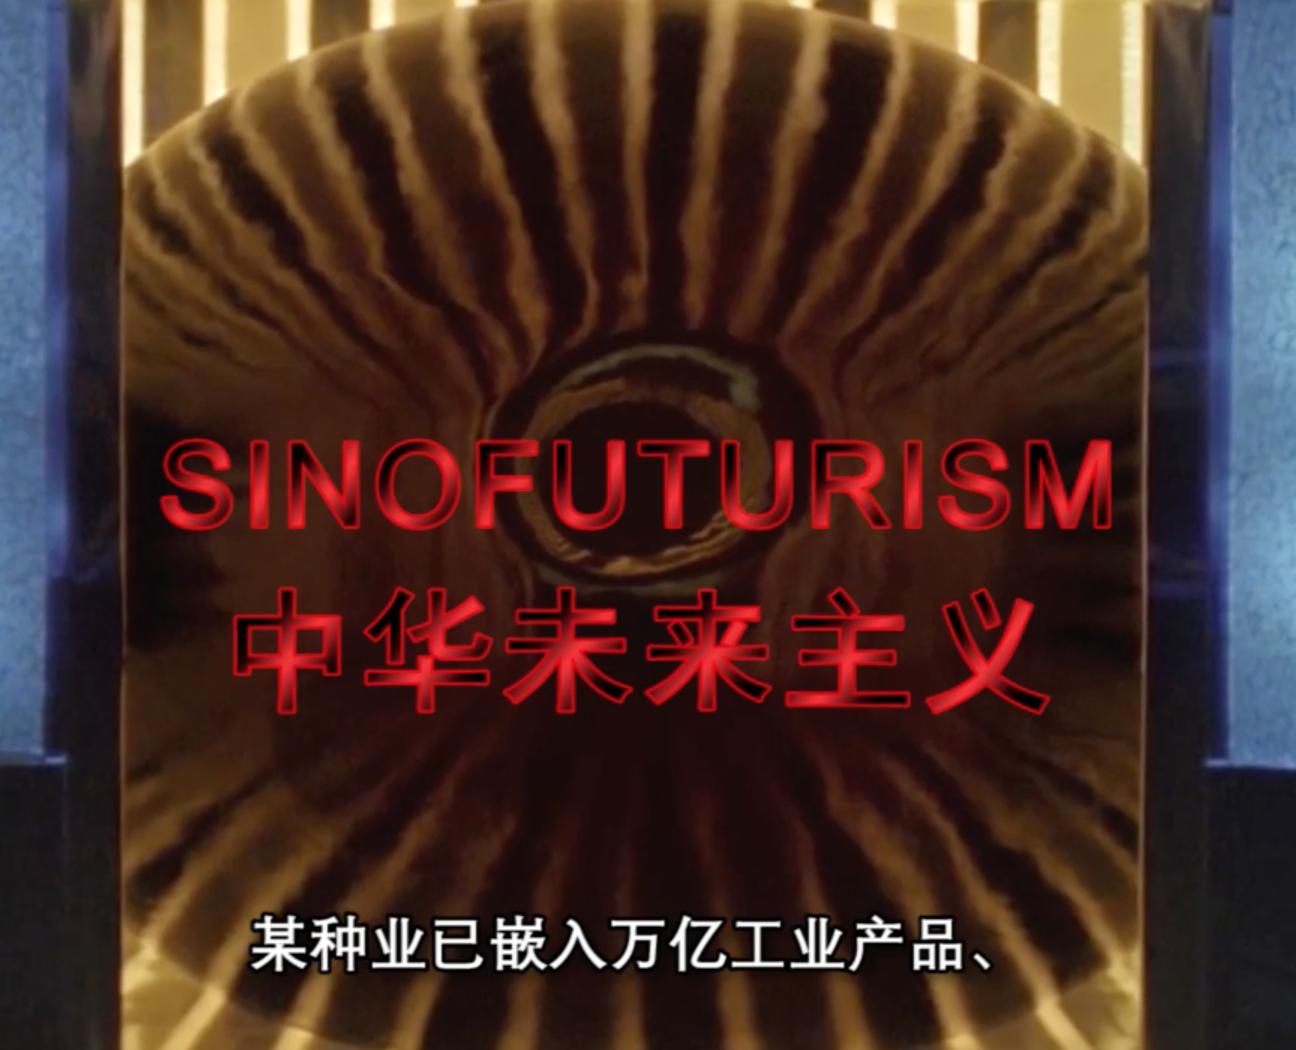 Dark Futures Film Club – Sinofuturism